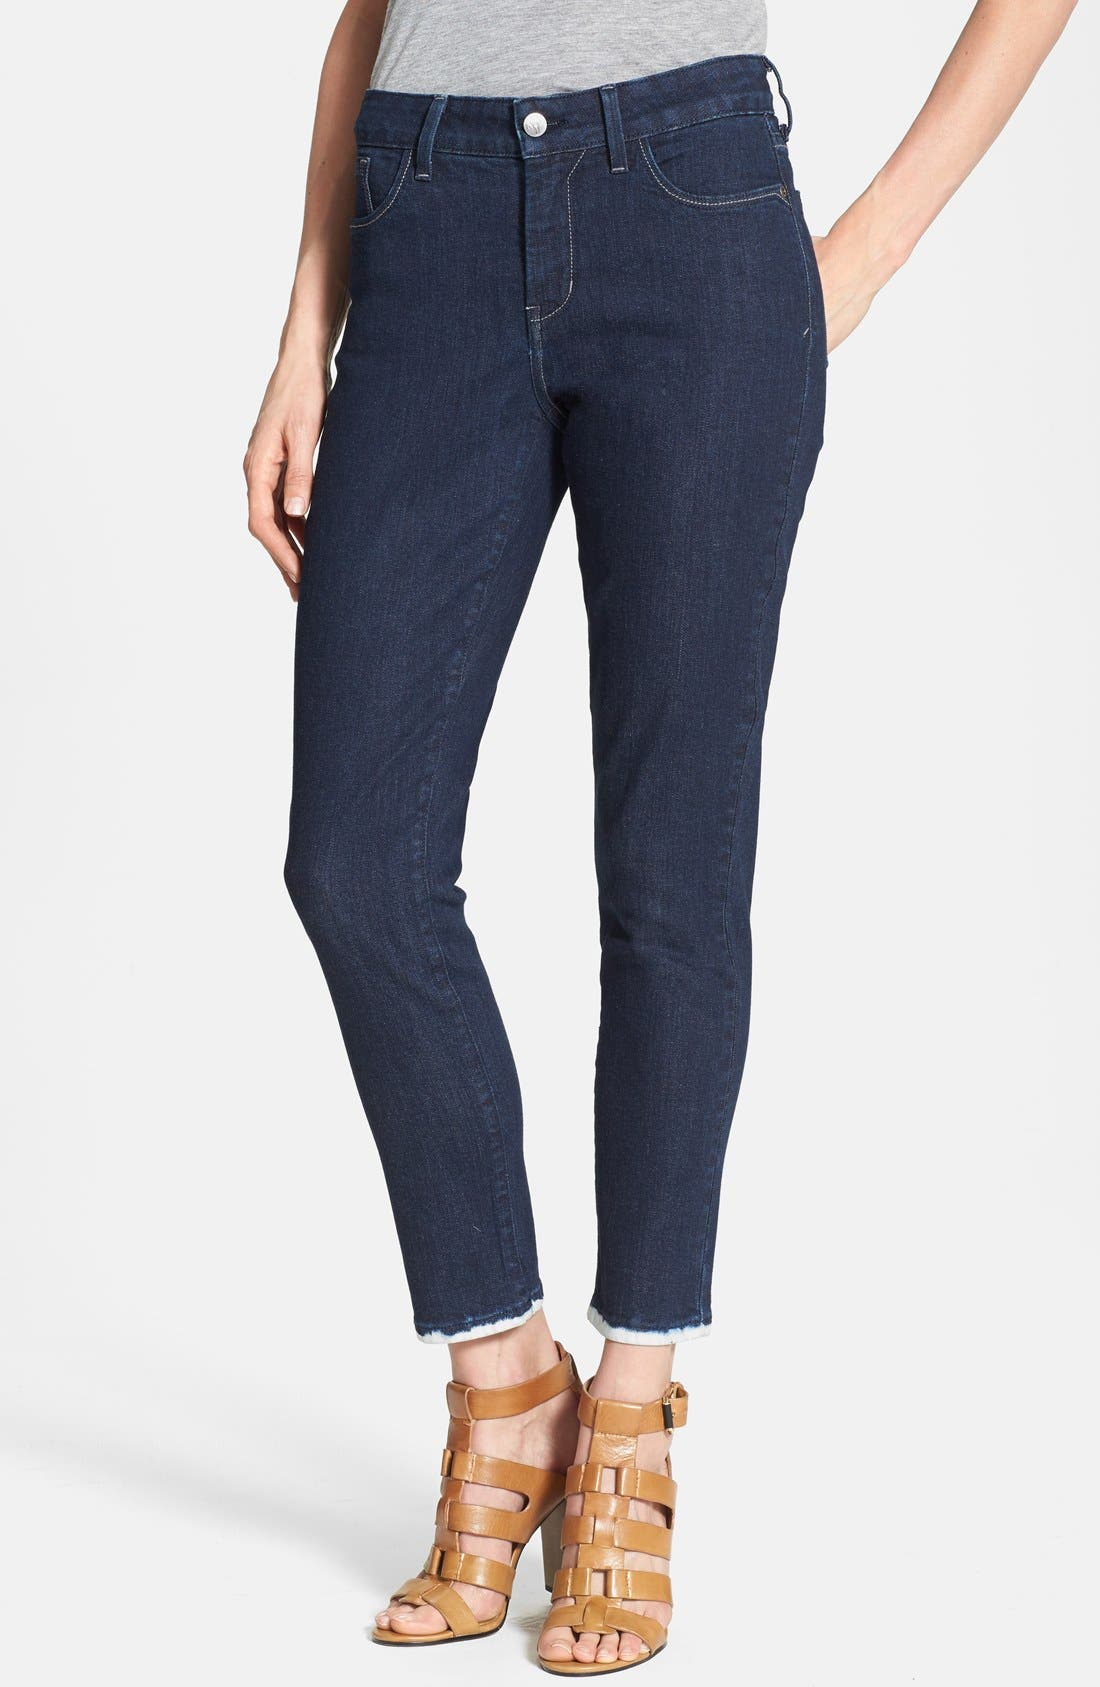 Alternate Image 1 Selected - NYDJ 'Everleigh' Ankle Skinny Jeans (Immersed Bleach) (Petite)